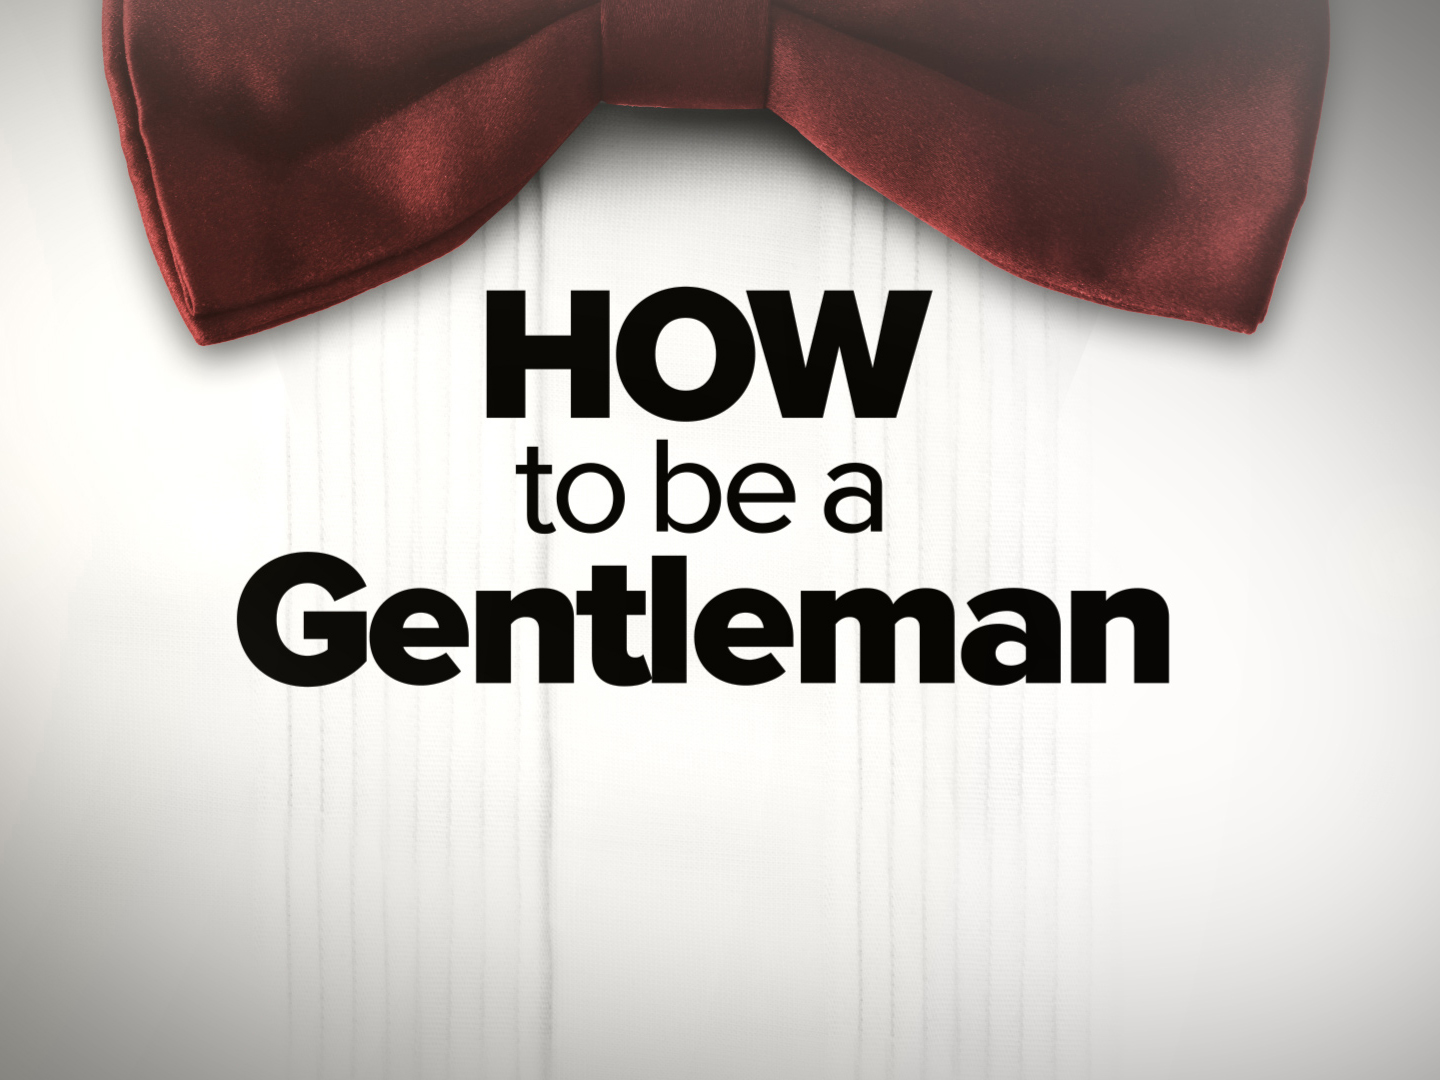 how to be a gentlemen Define gentleman: a man of noble or gentle birth a man belonging to the landed gentry — gentleman in a sentence.